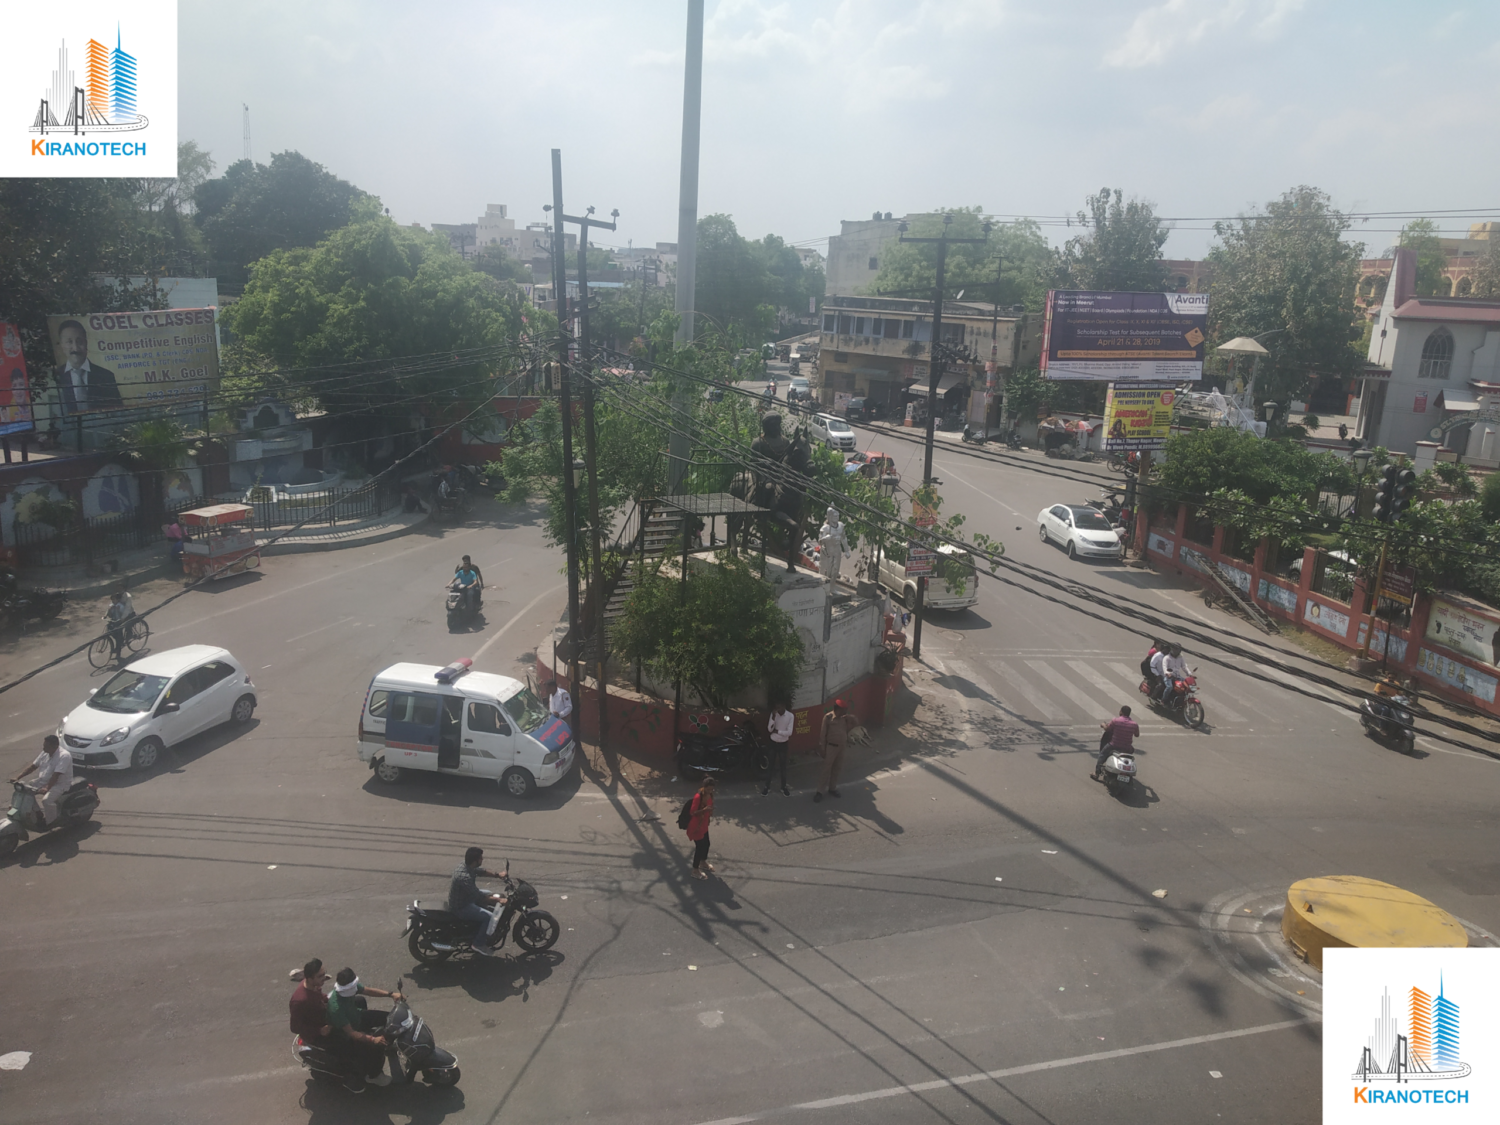 Junction Improvement and Traffic Signaling Work in Meerut (UP) (2019)